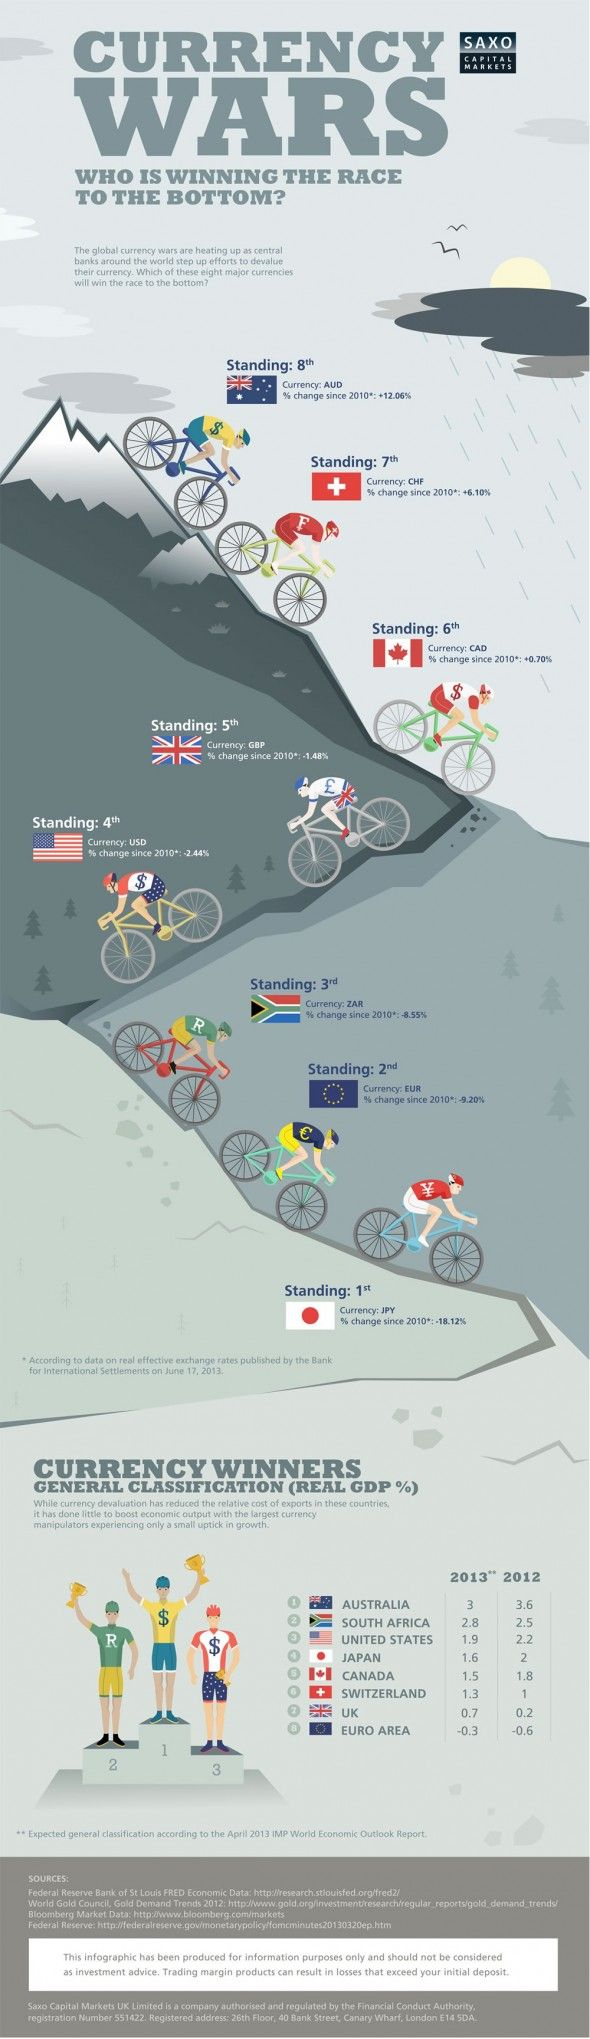 Infographic: Who Will Win the Race to the Bottom in the Latest Currency War?